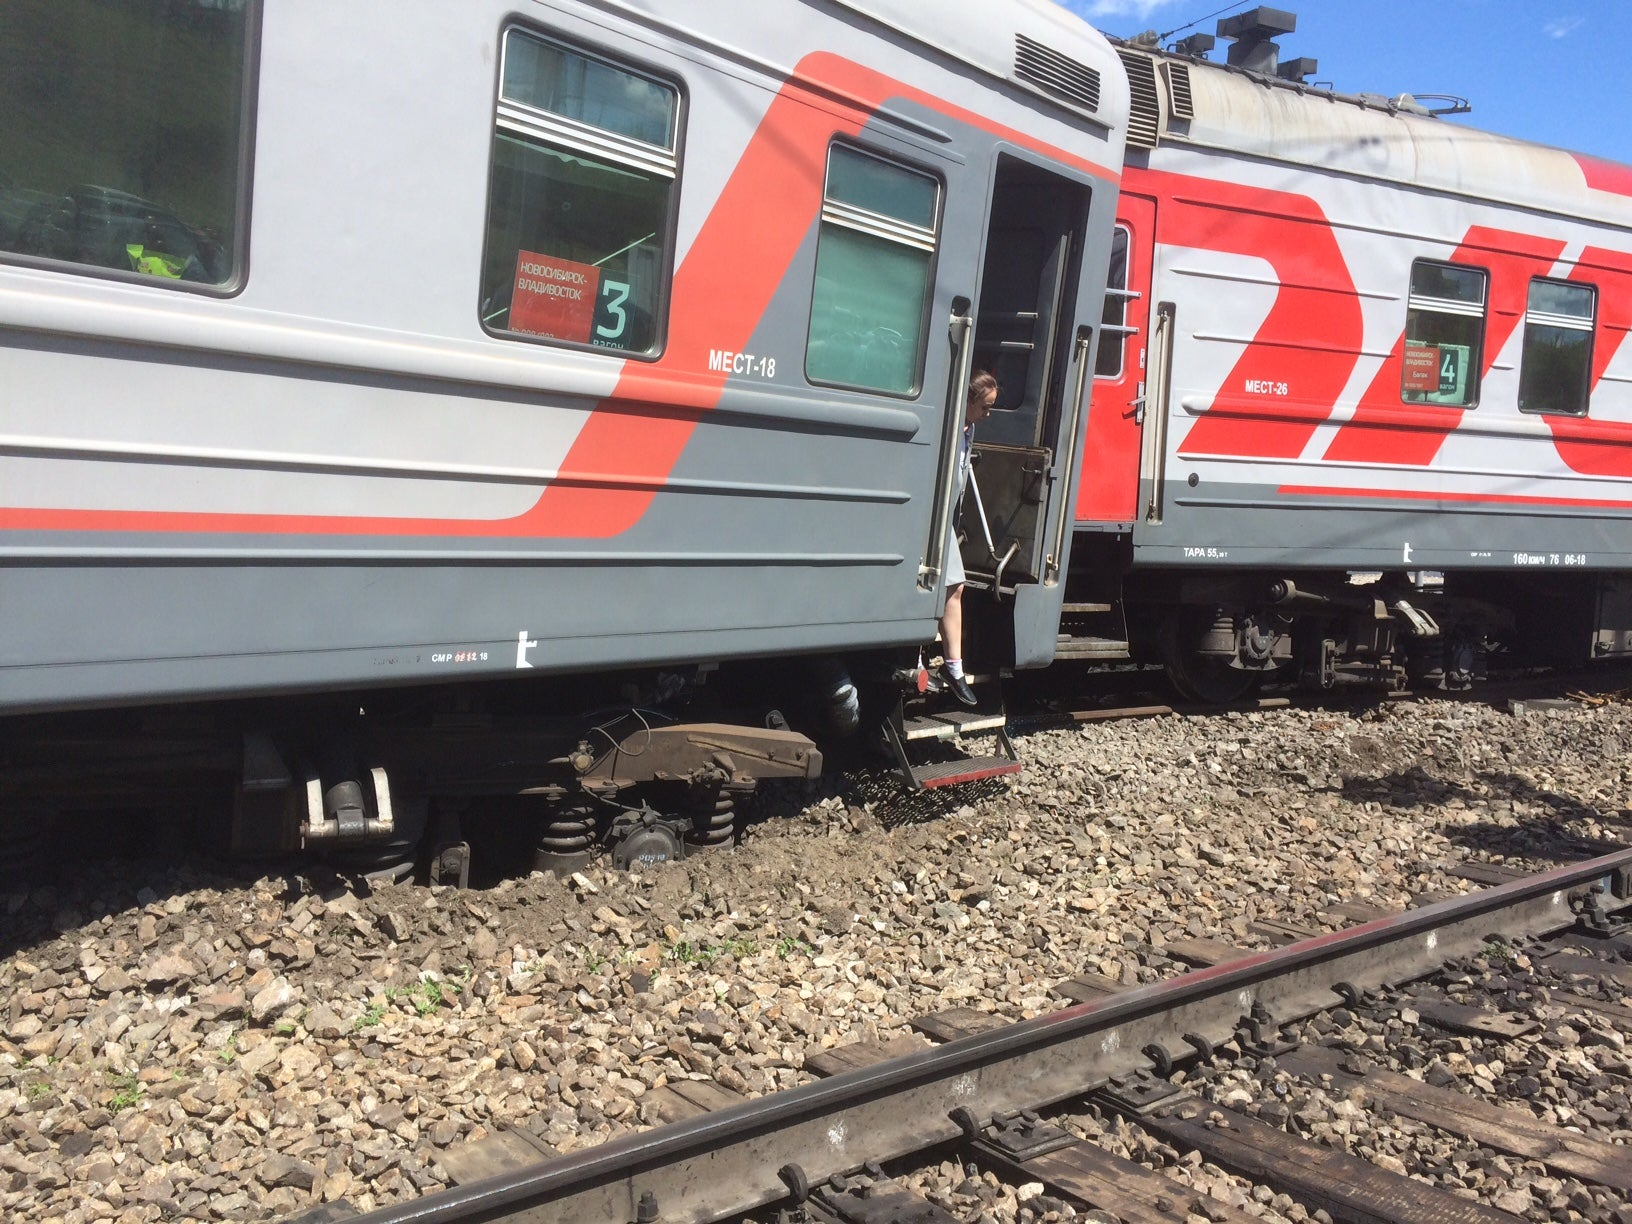 train derailment - latest news, breaking stories and comment